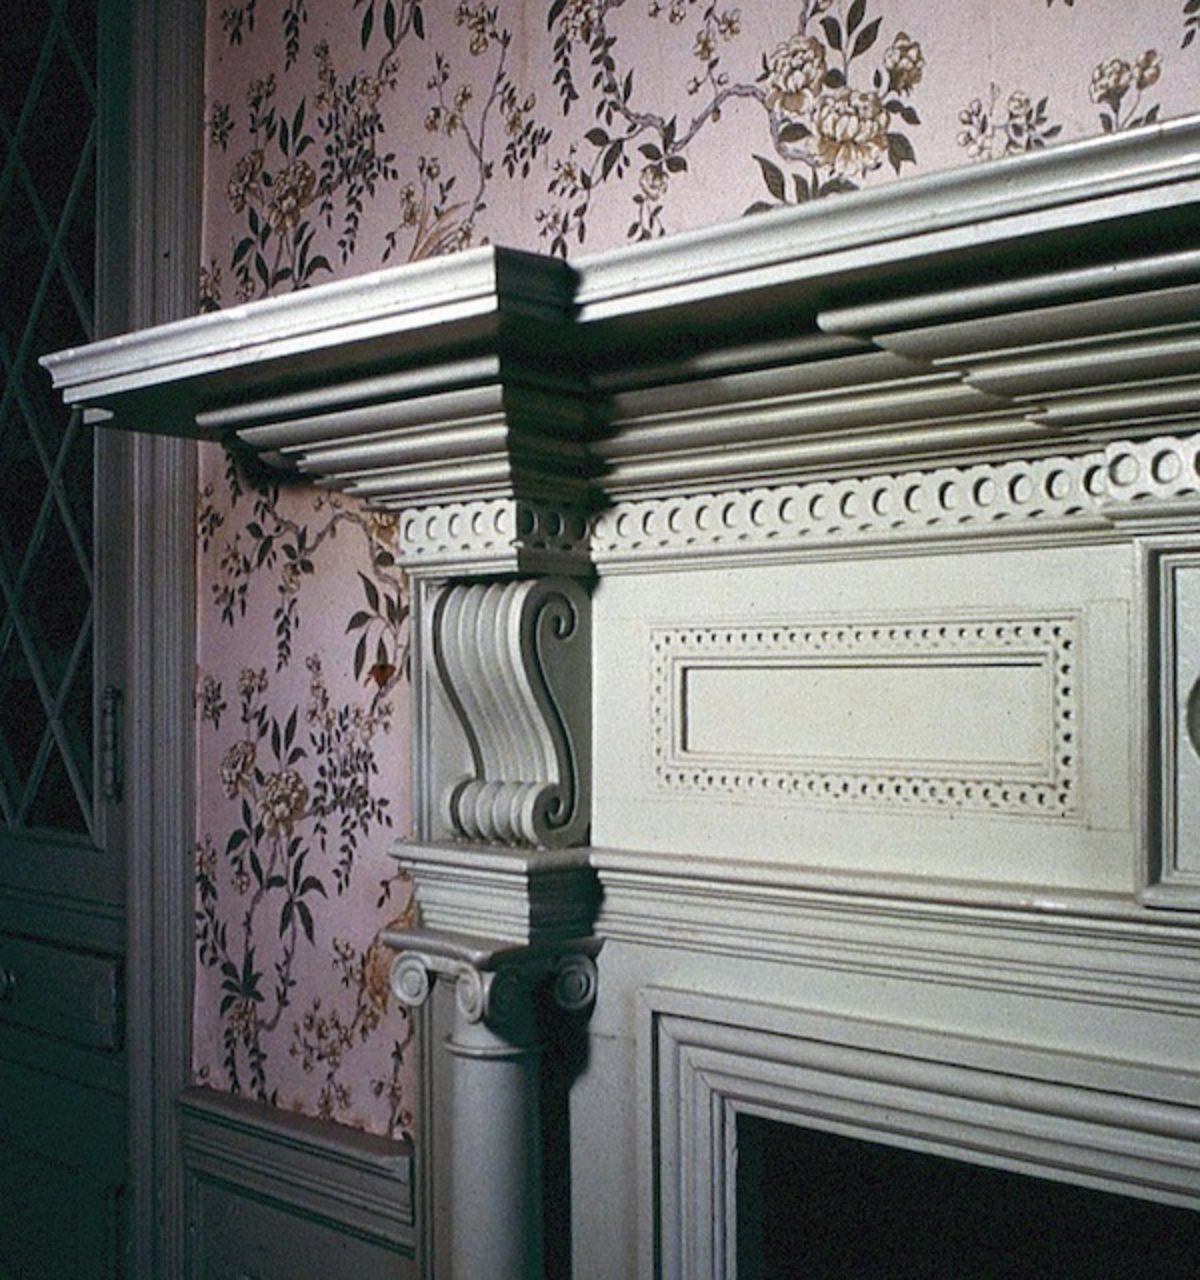 Notes on Moldings, the change from Roman to Greek